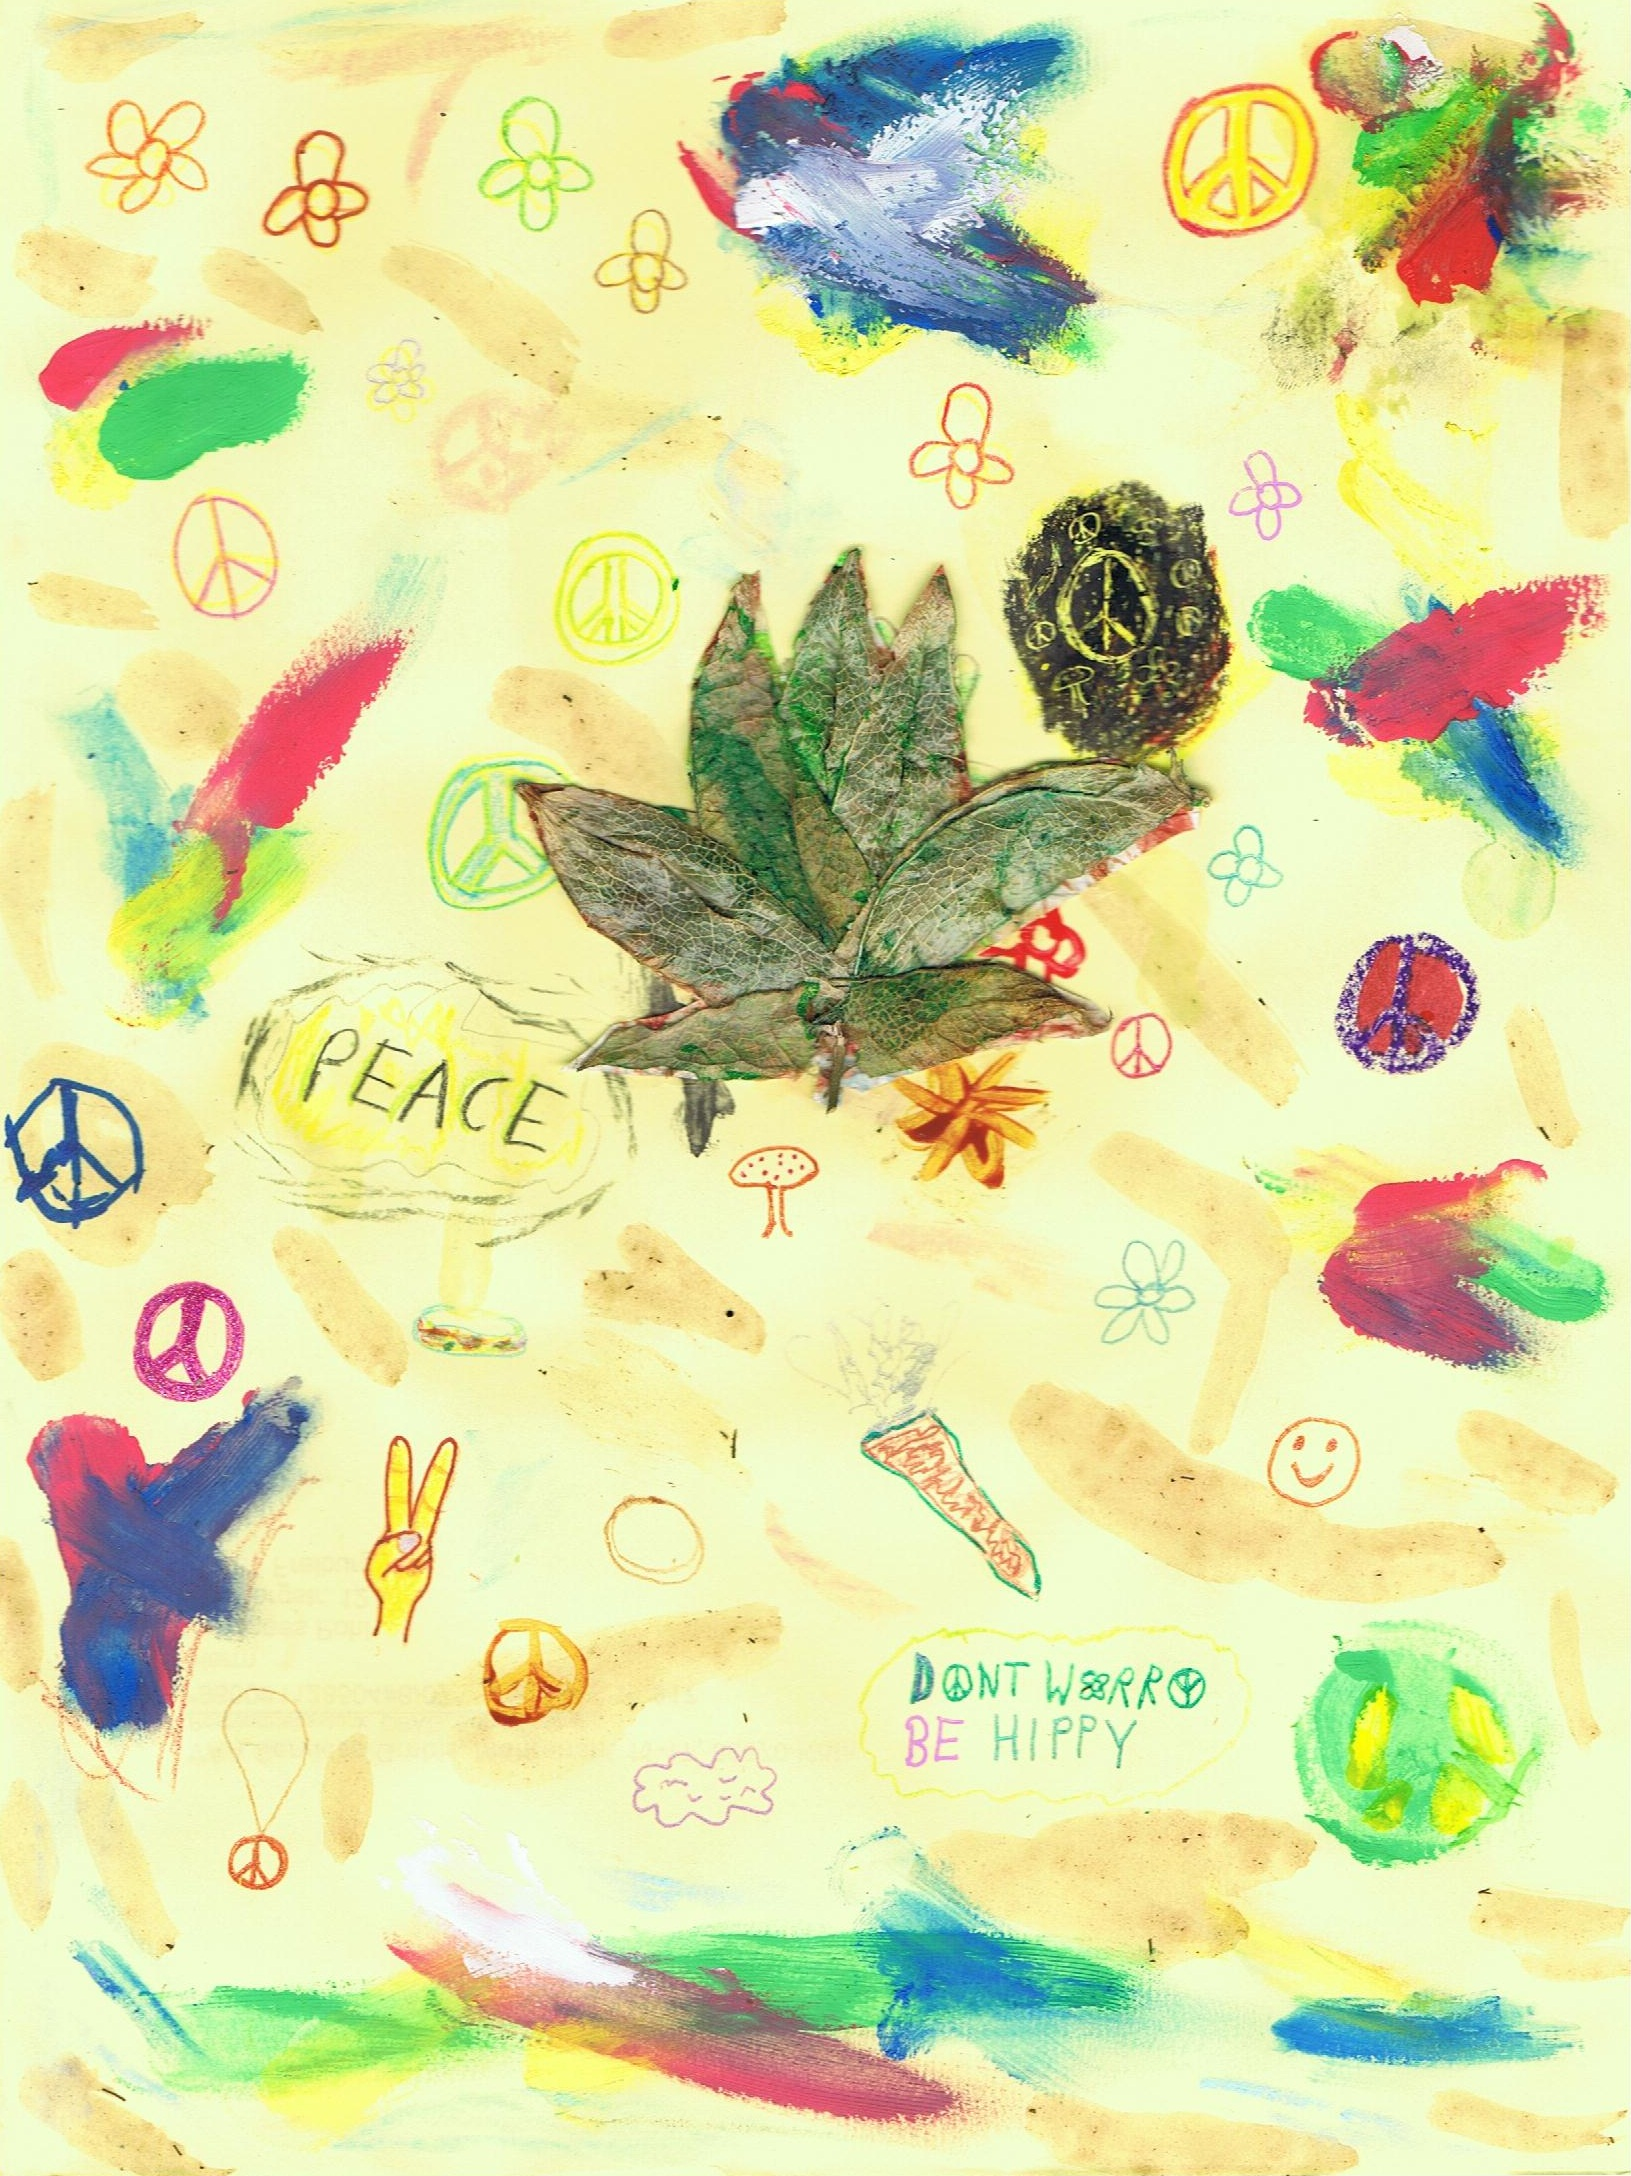 Make peace not war by Dominik19